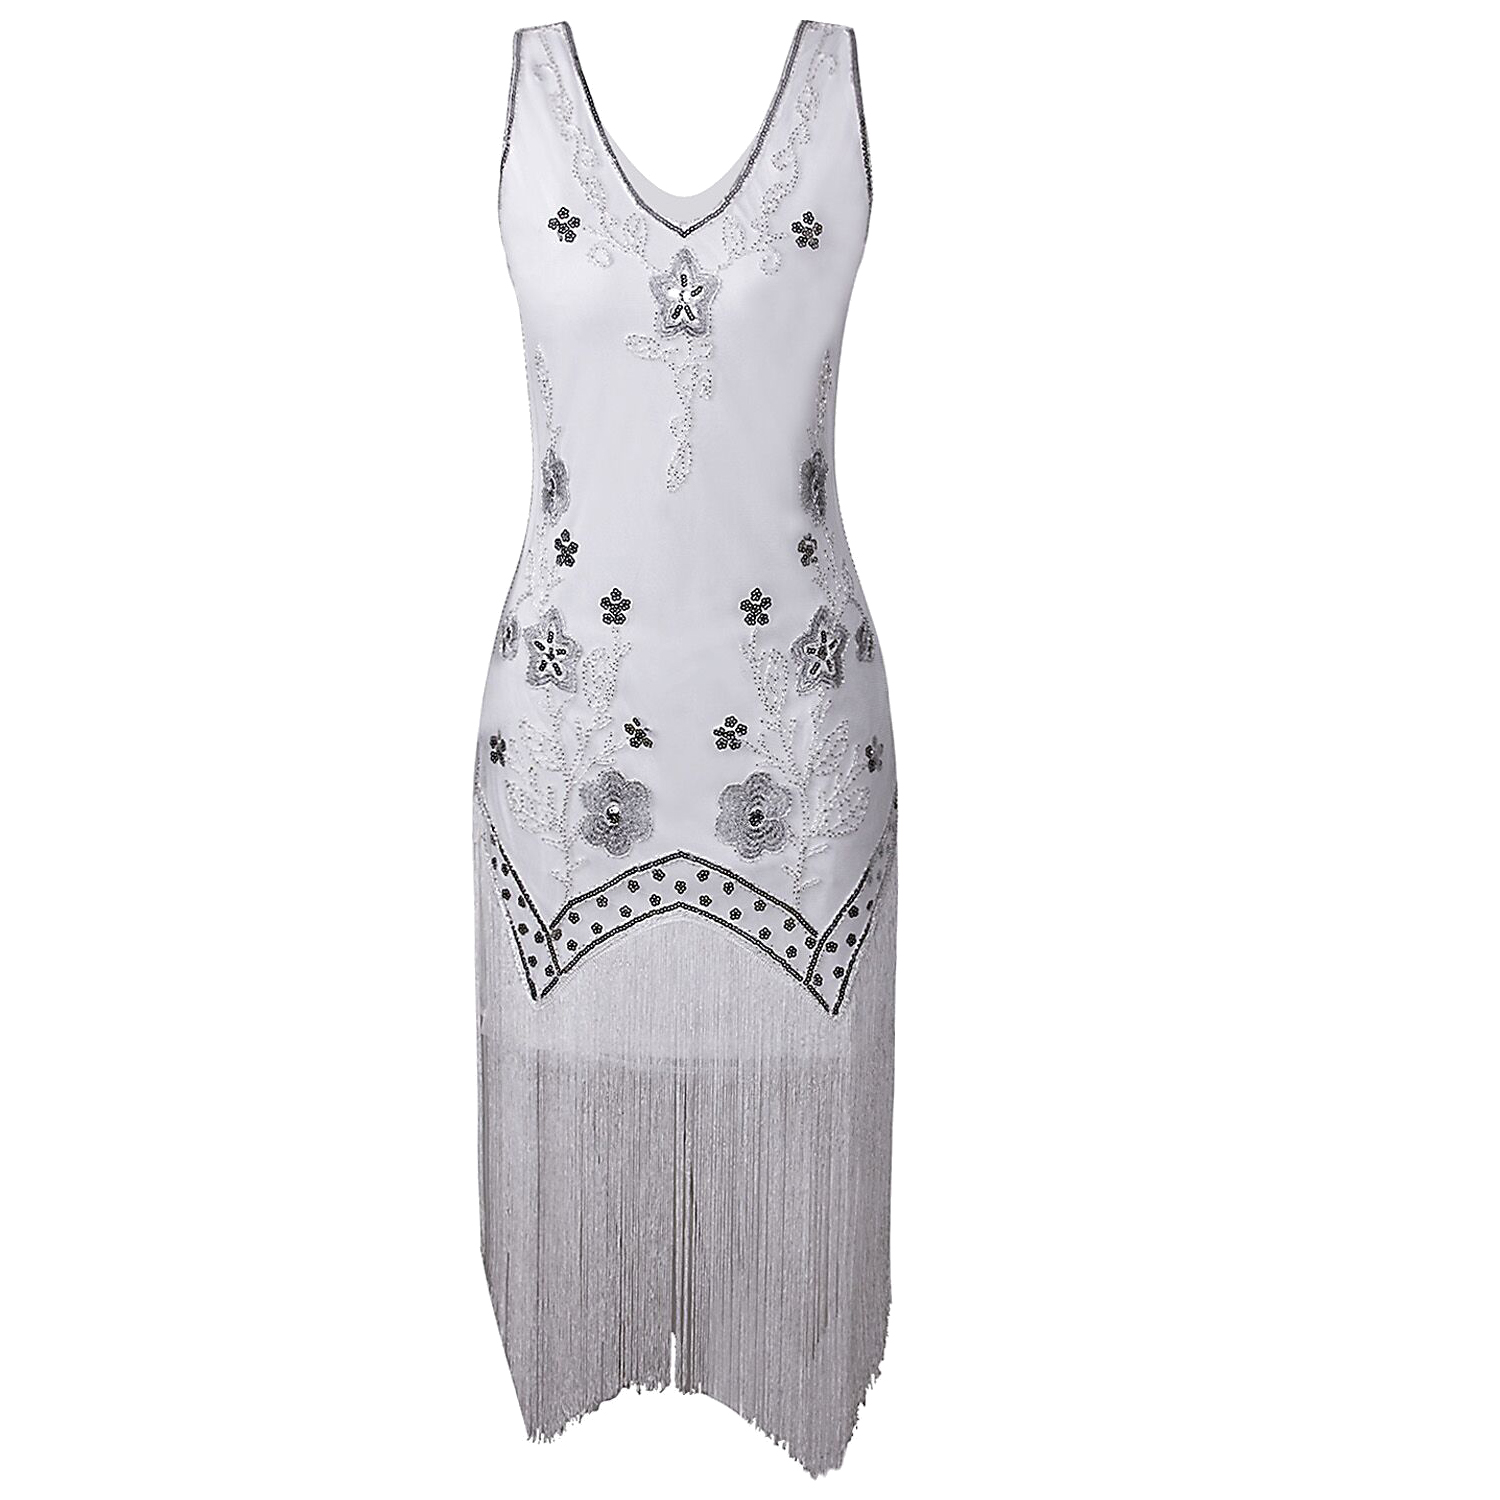 1920s Flapper Dress Party Dresses Evening Ball Gowns Casual Wear ...